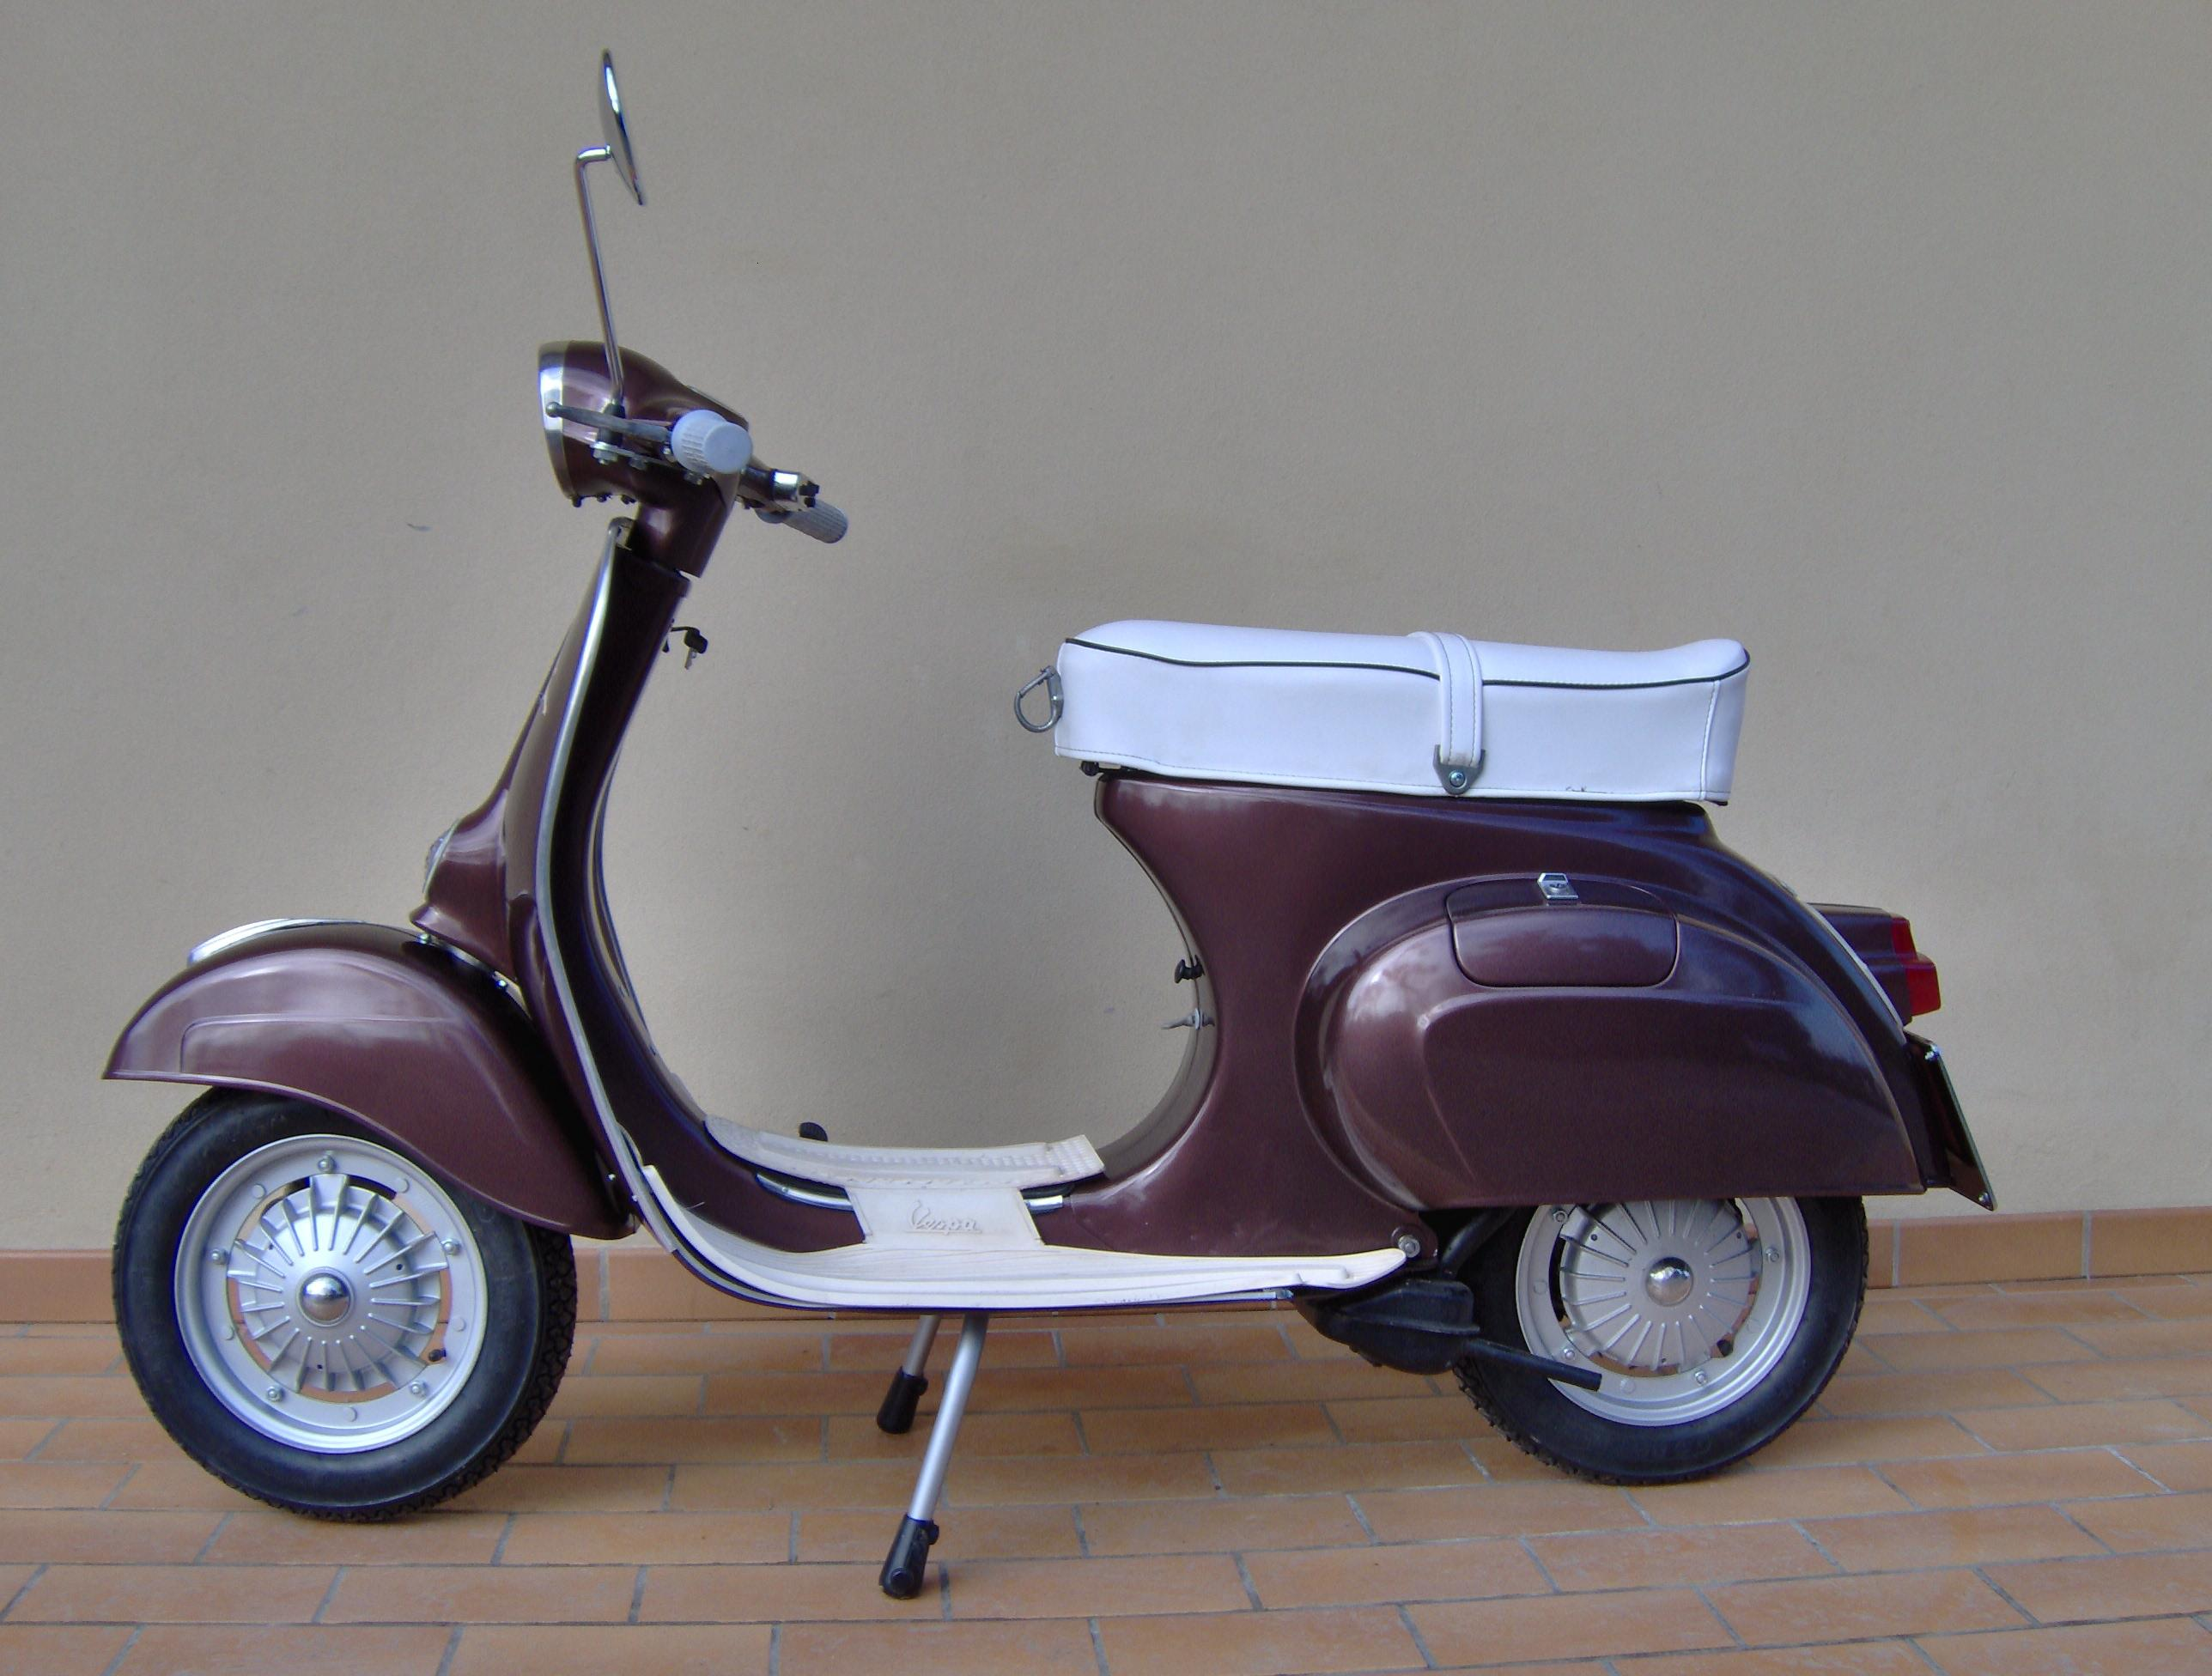 vespa 125 primavera et3 qui con curiosit video e foto. Black Bedroom Furniture Sets. Home Design Ideas